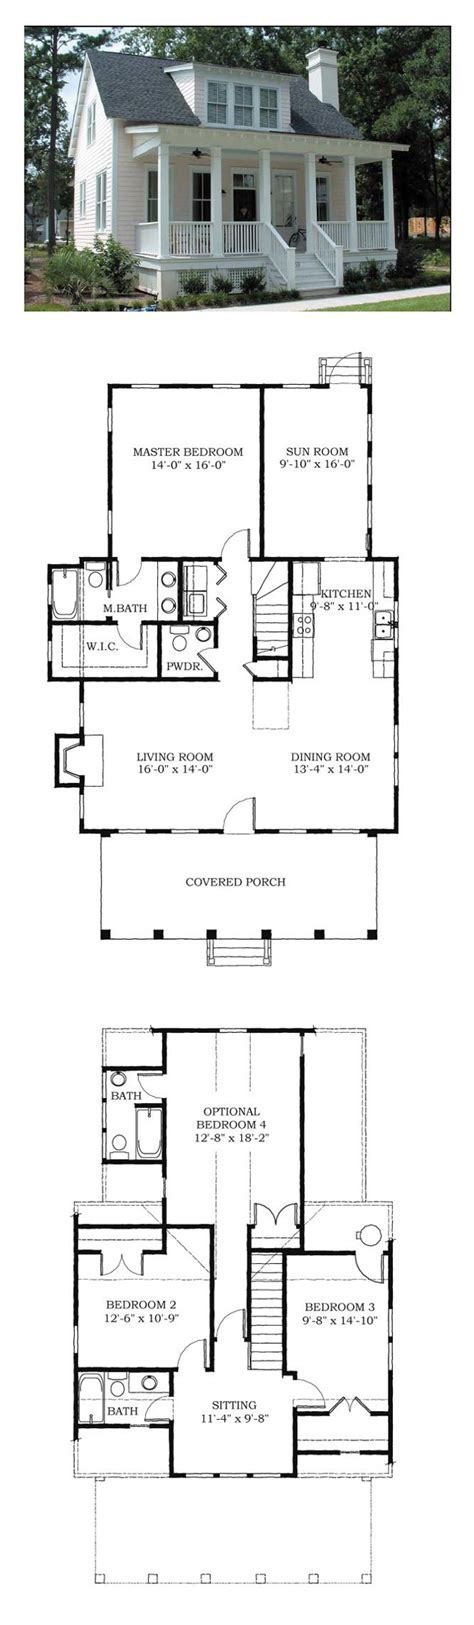 tiny cottage floor plans 101 interior design ideas home bunch interior design ideas